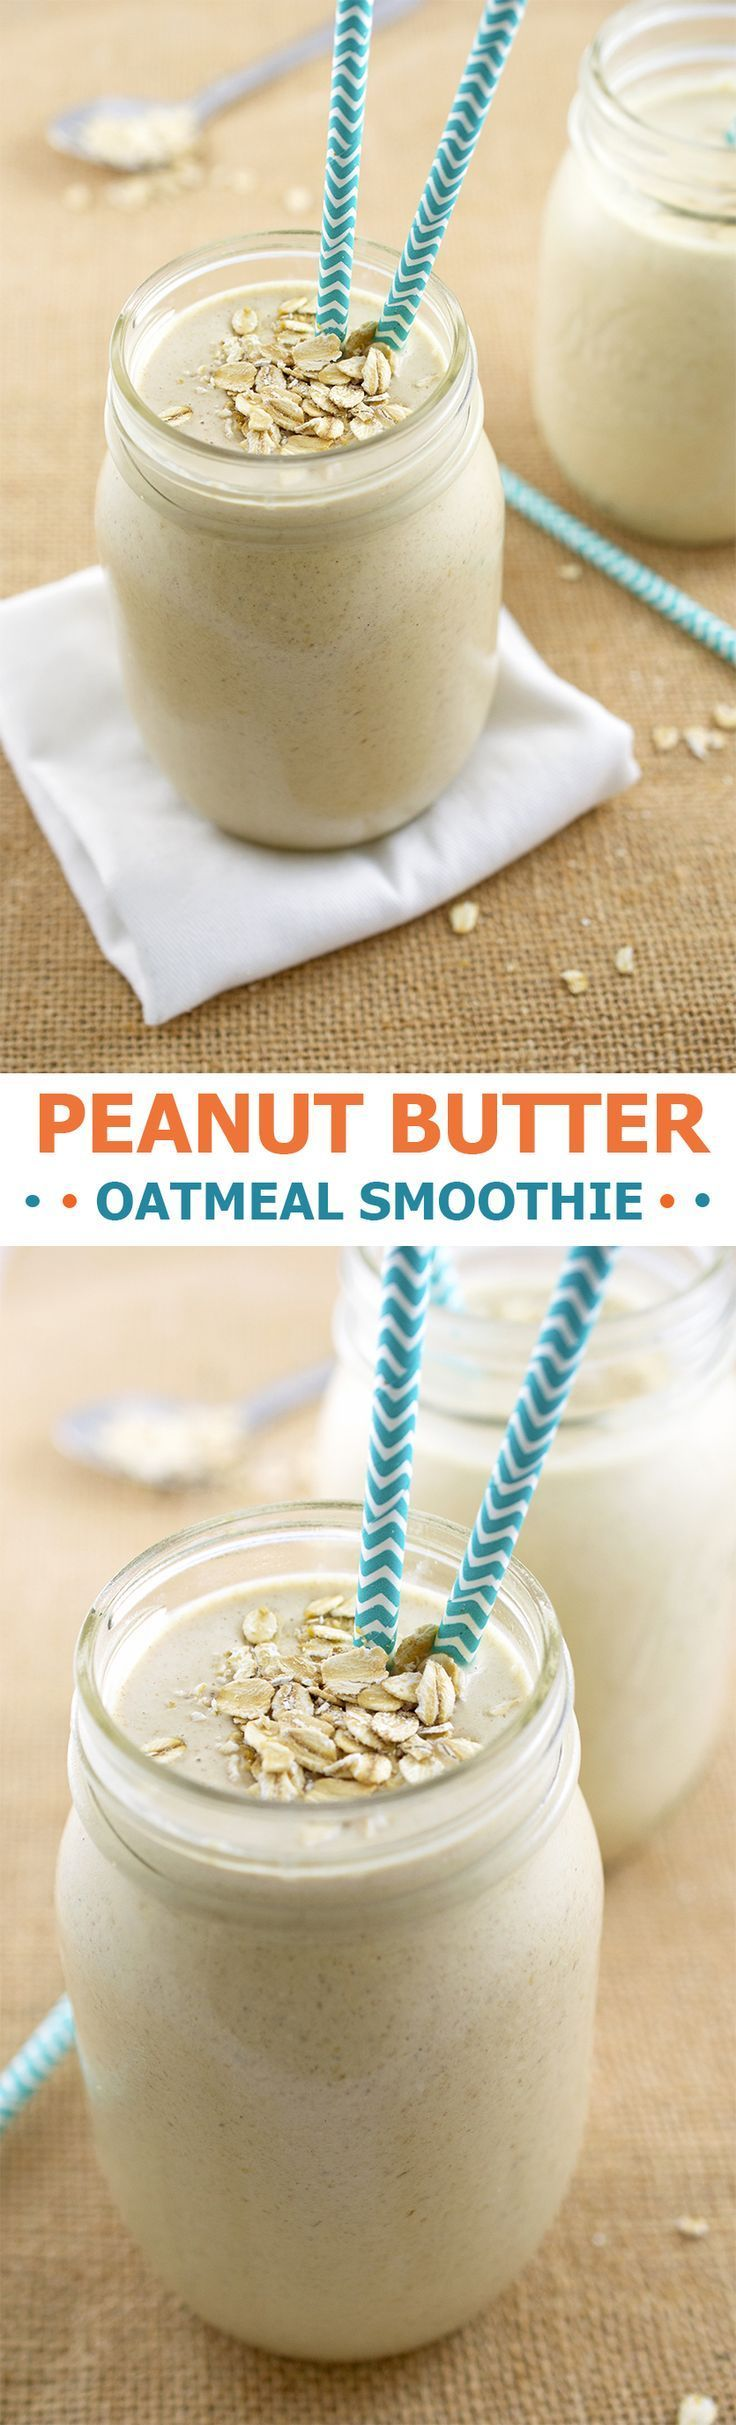 Thick and creamy Peanut Butter Oatmeal Smoothie loaded with creamy peanut butter, old fashioned oats, bananas and vanilla soy milk.